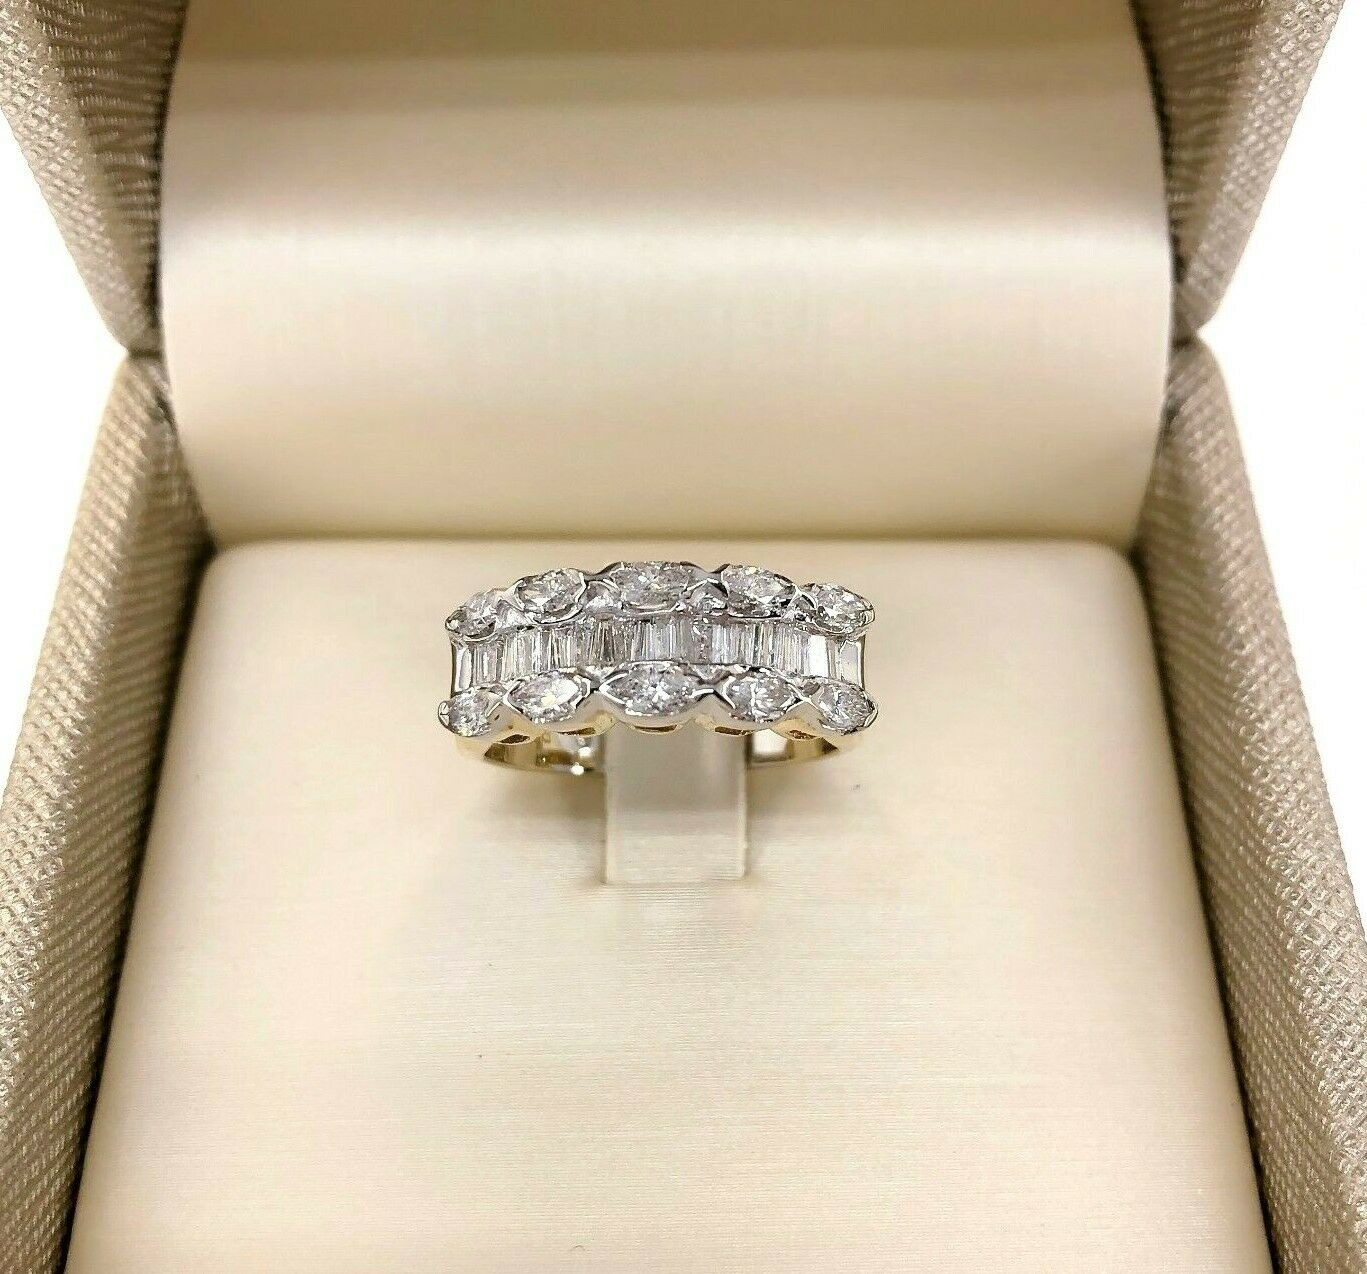 1.15 Carats Marquise & Baguette Diamond Celebration/Anniversary Ring 14K 2 Tone